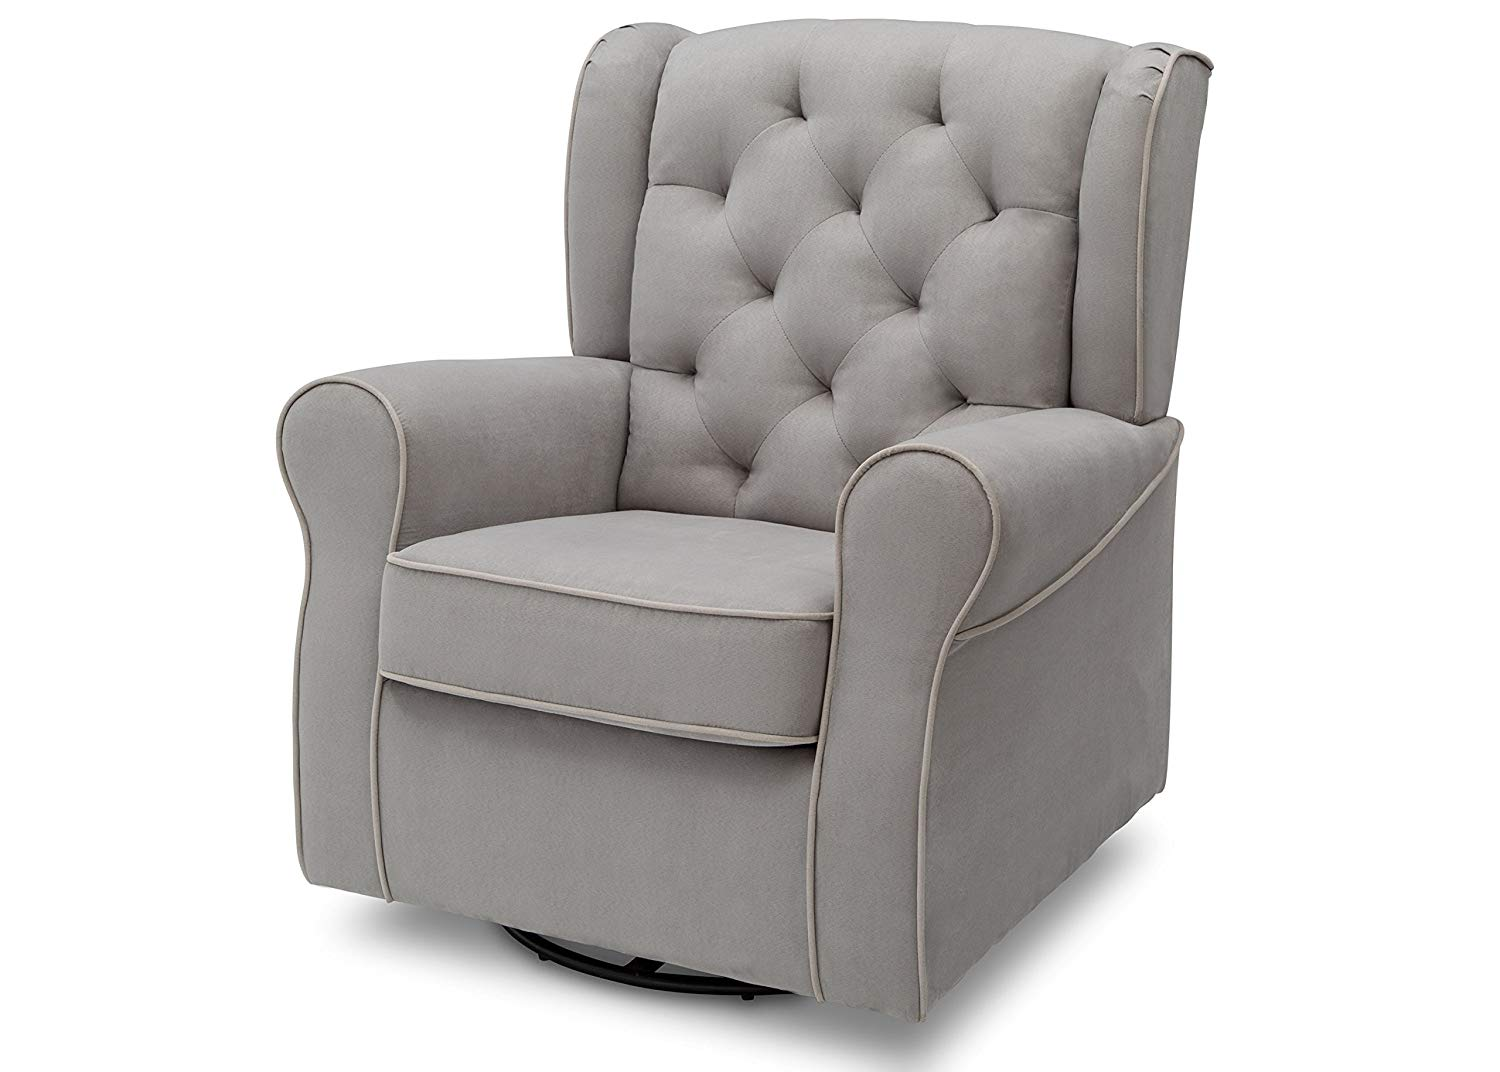 Traveller Location: Delta Children Emerson Upholstered Glider Swivel Rocker Chair,  Dove Grey with Soft Grey Welt: Baby